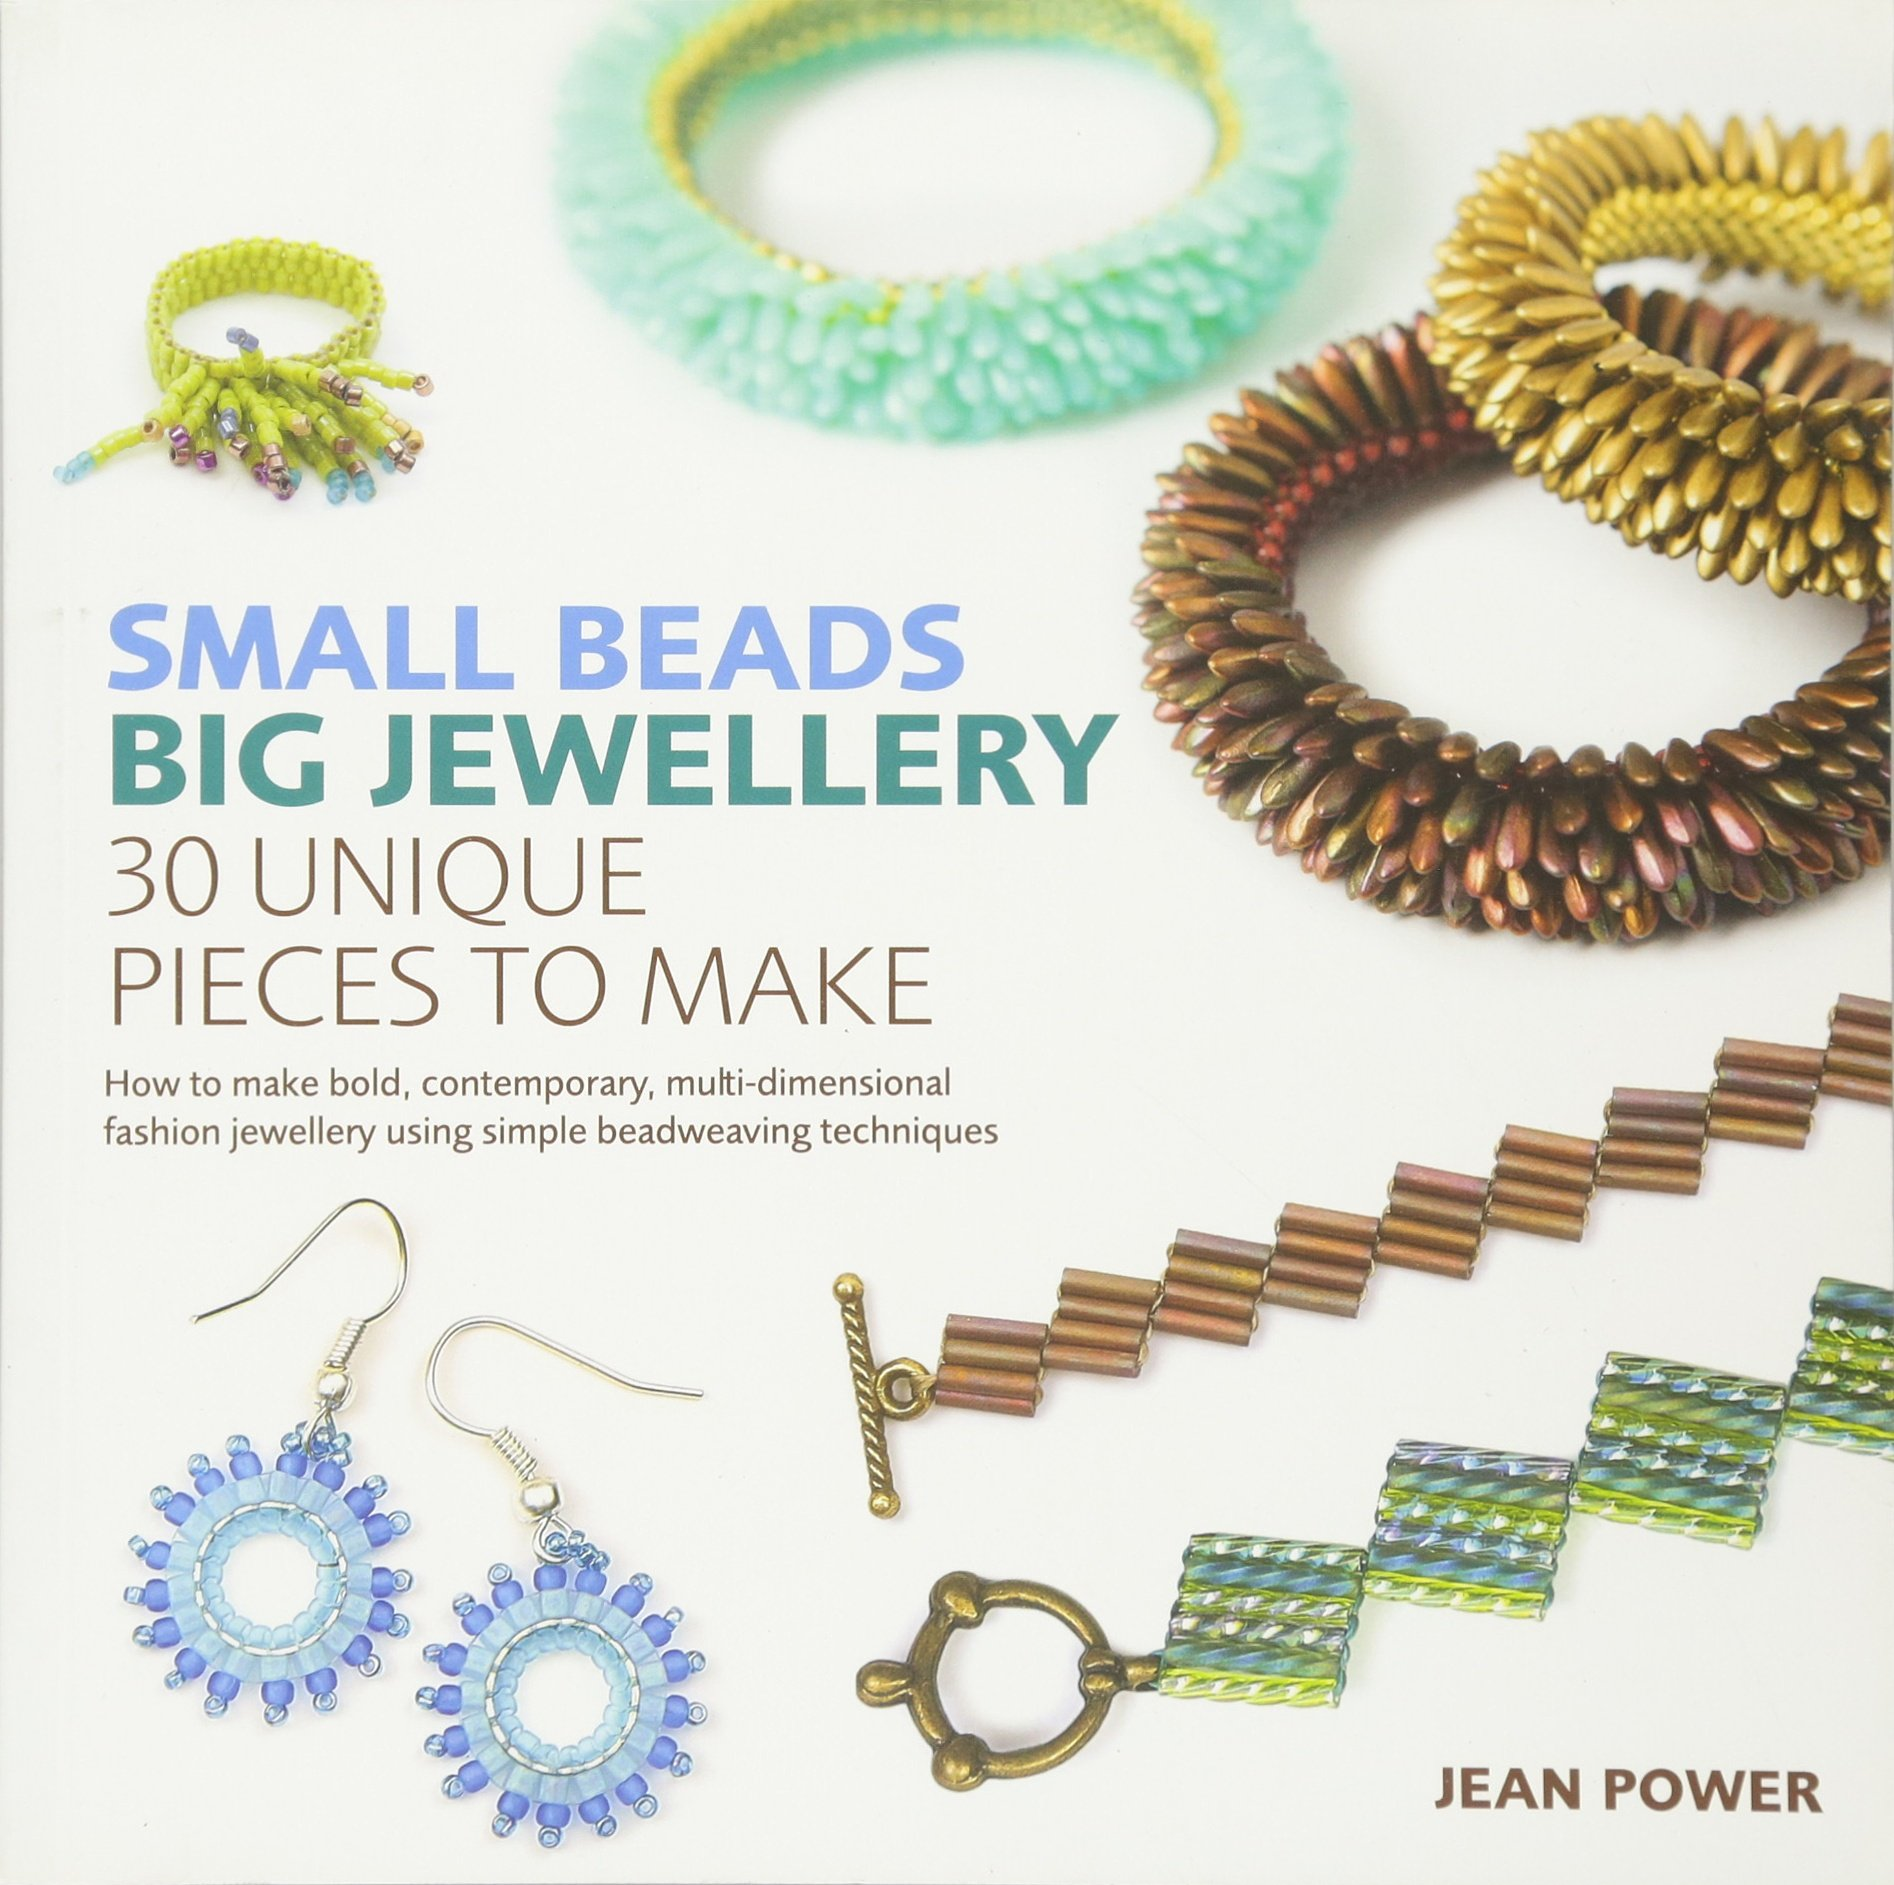 Small Beads, Big Jewellery: 30 Unique Pieces to Make